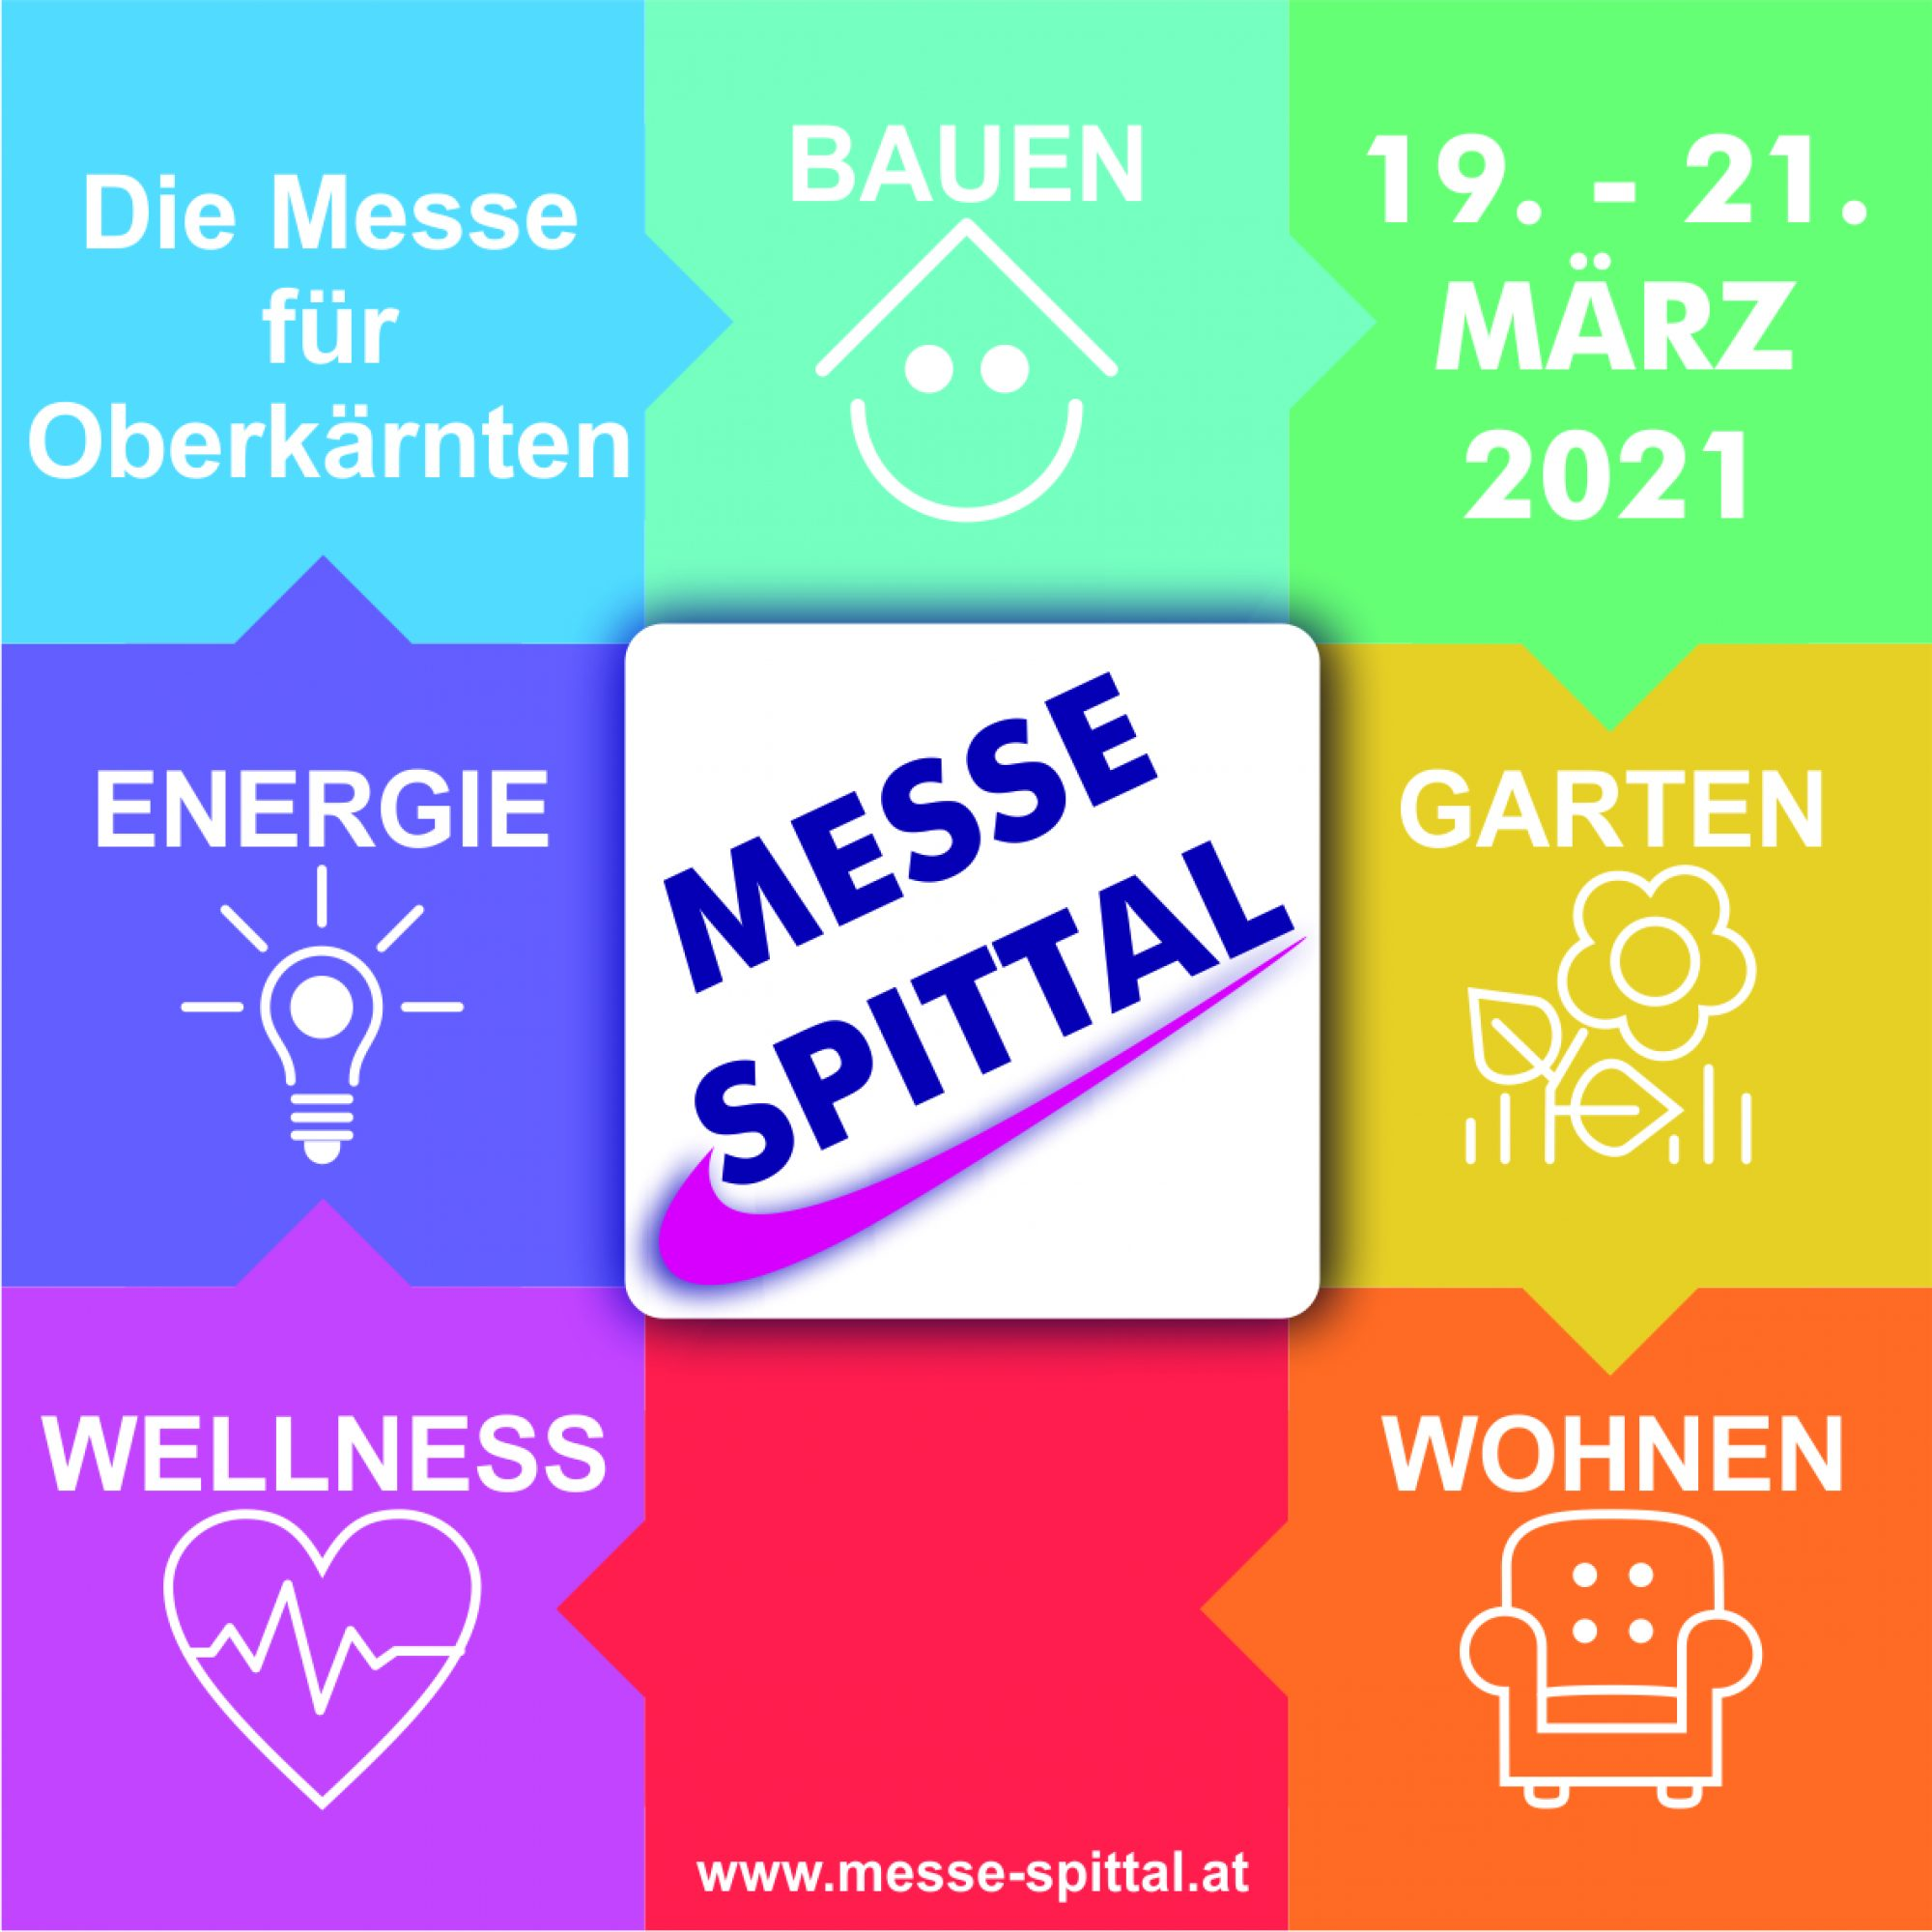 MESSE SPITTAL